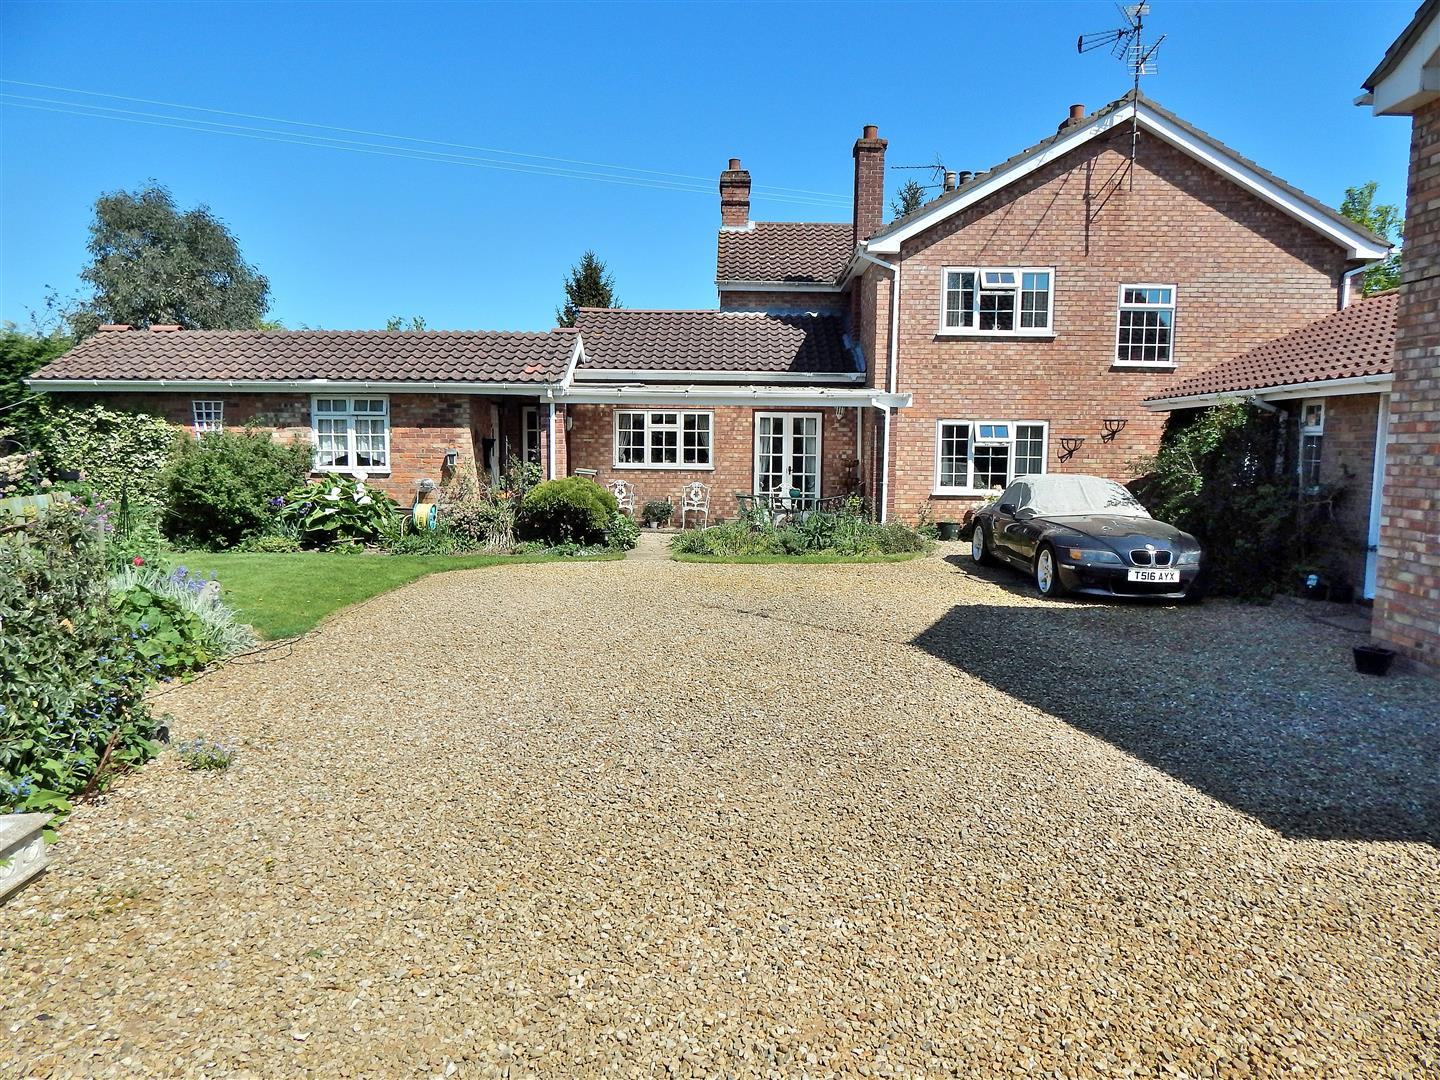 5 bed semi-detached house for sale in King's Lynn, PE34 4PX  - Property Image 1